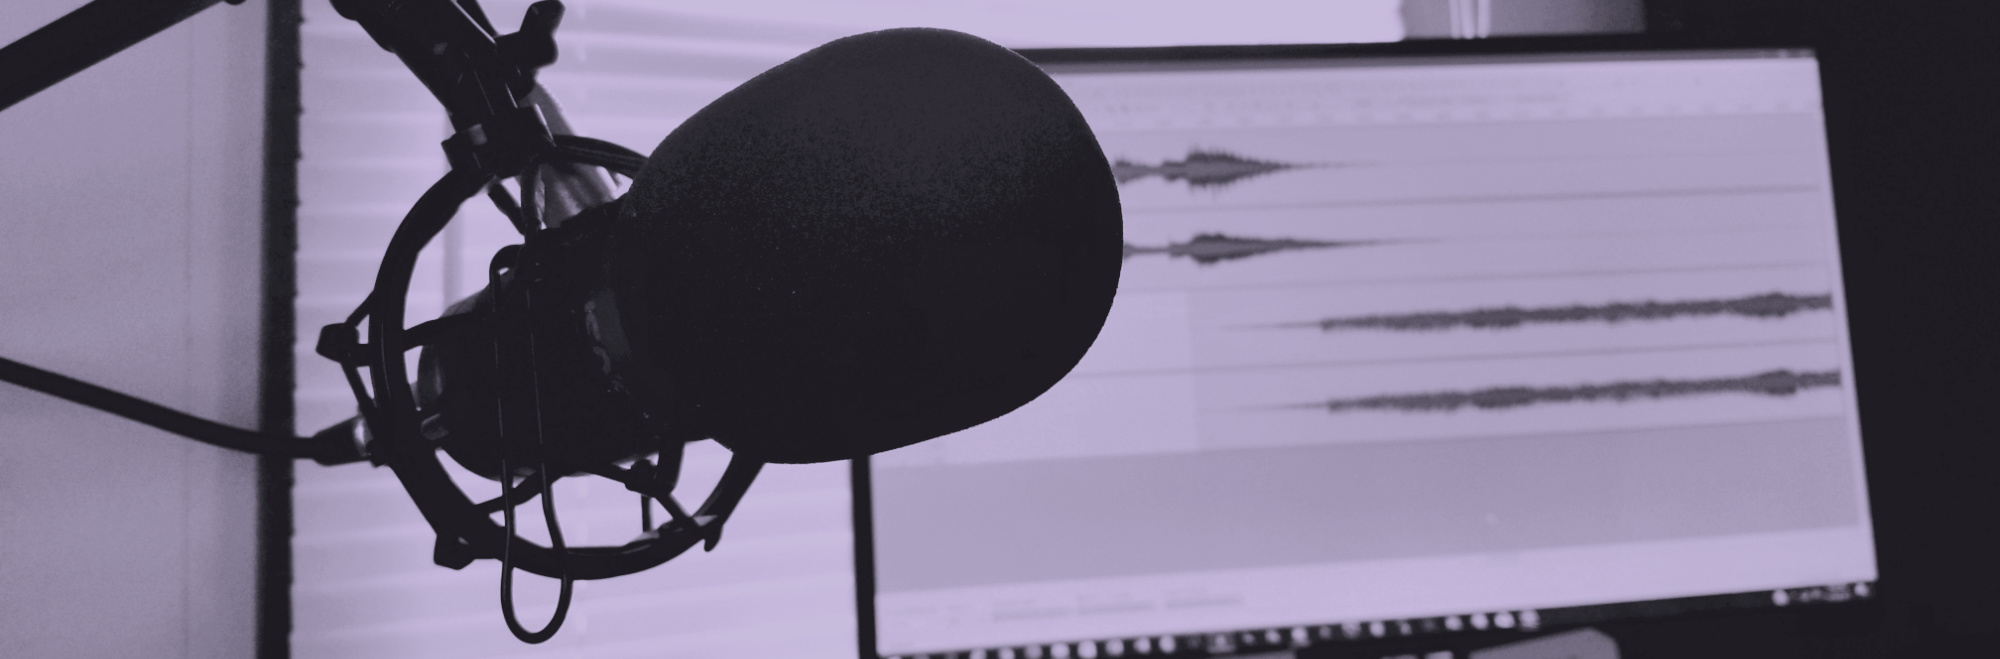 Choosing a Microphone for Podcasting